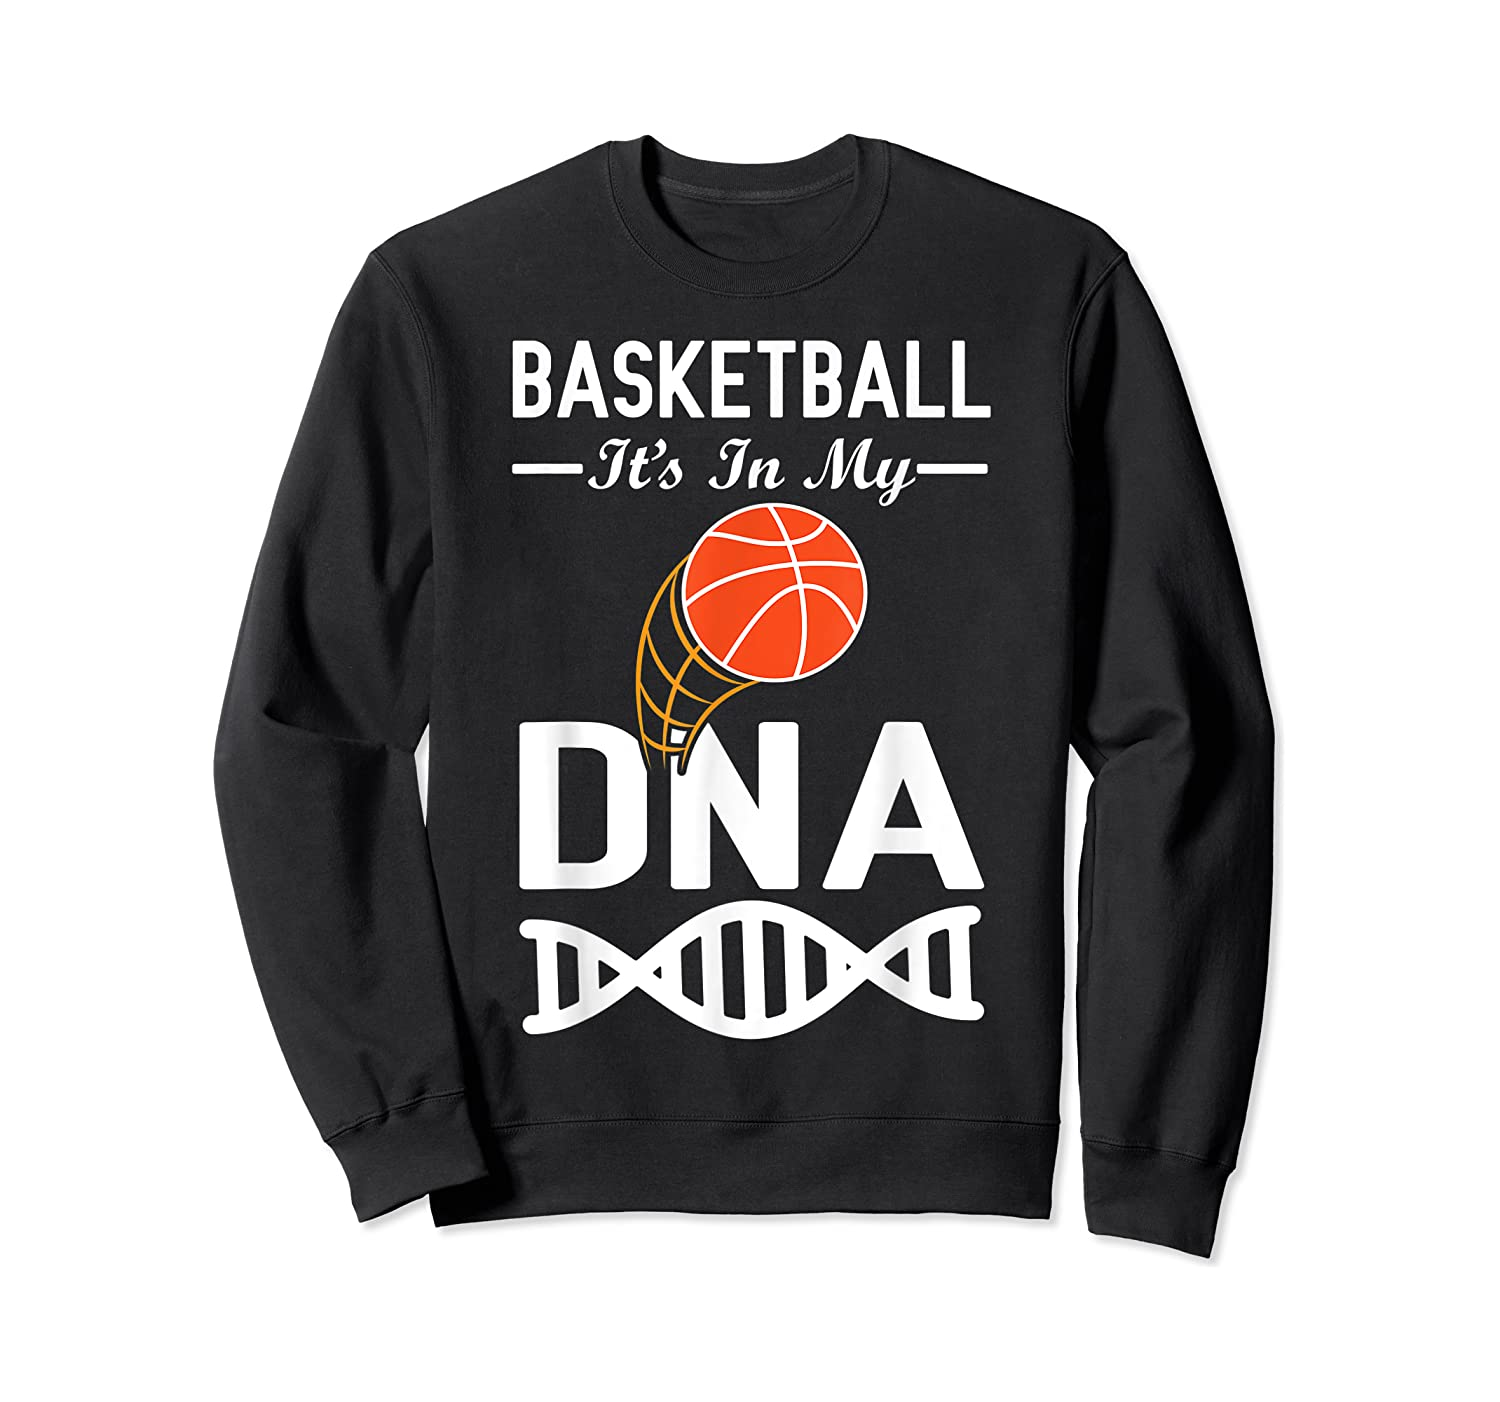 Sports Lover Tees - Basketball It's In My Dna T-shirt Crewneck Sweater